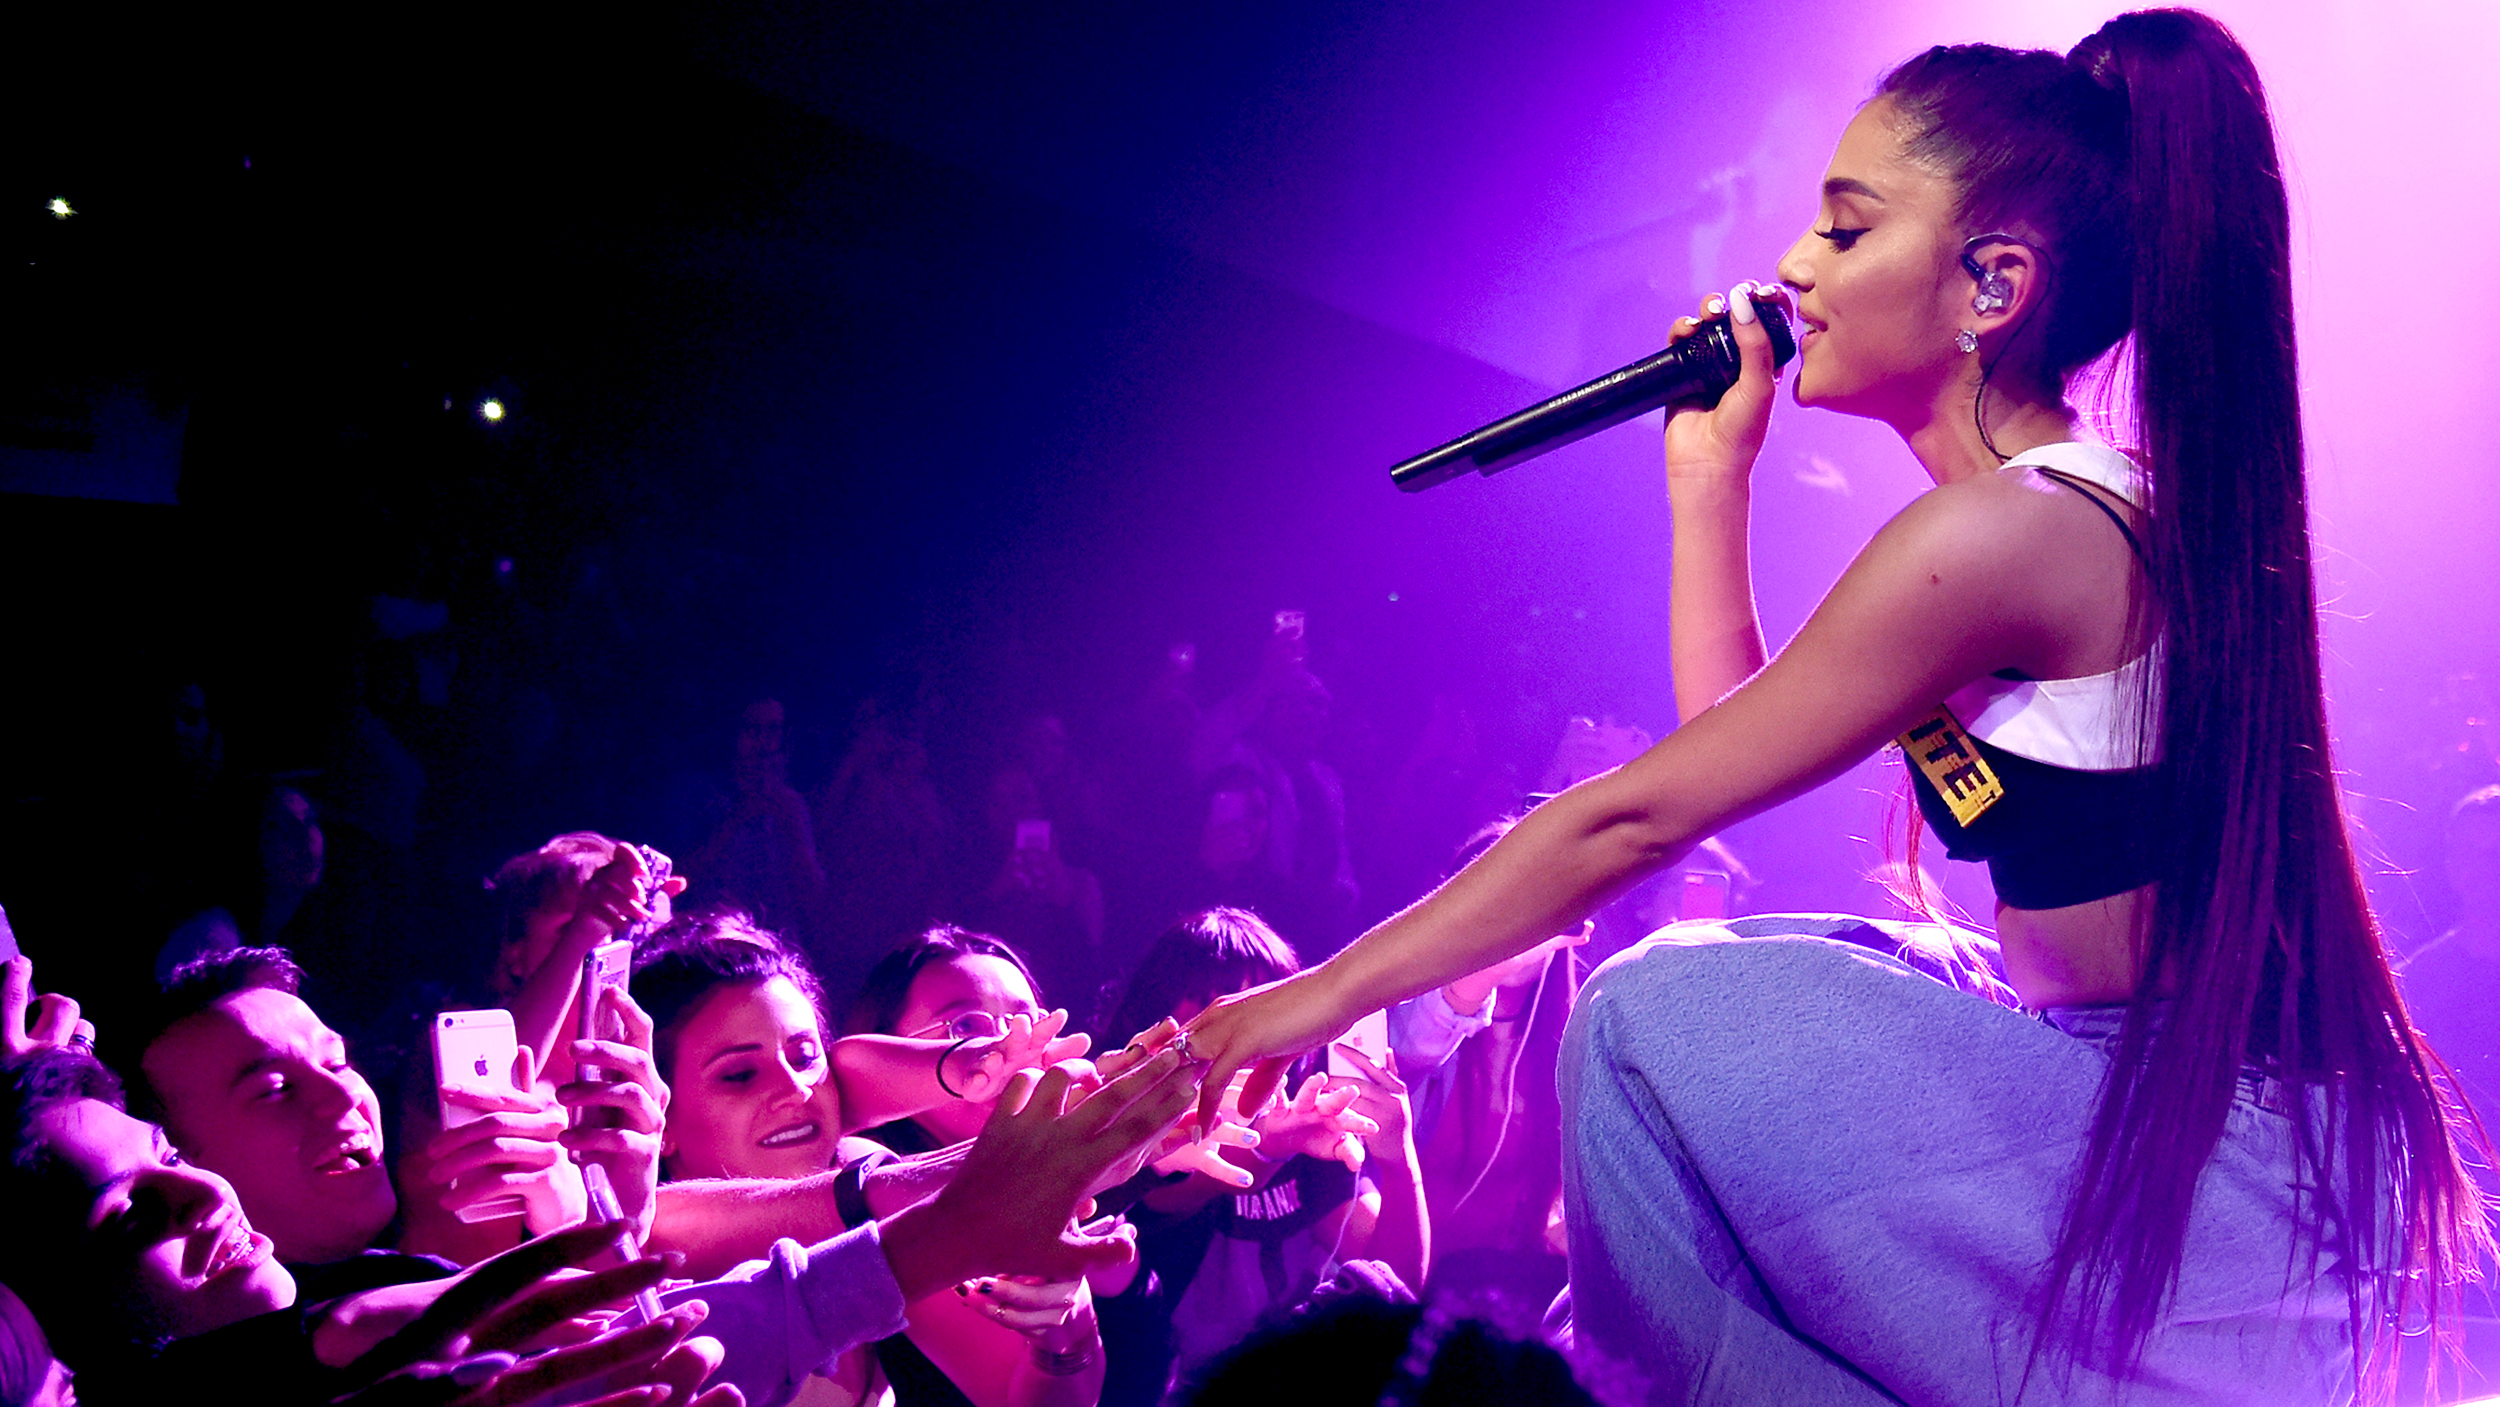 Ariana Grande, other pop stars set for Manchester benefit ...